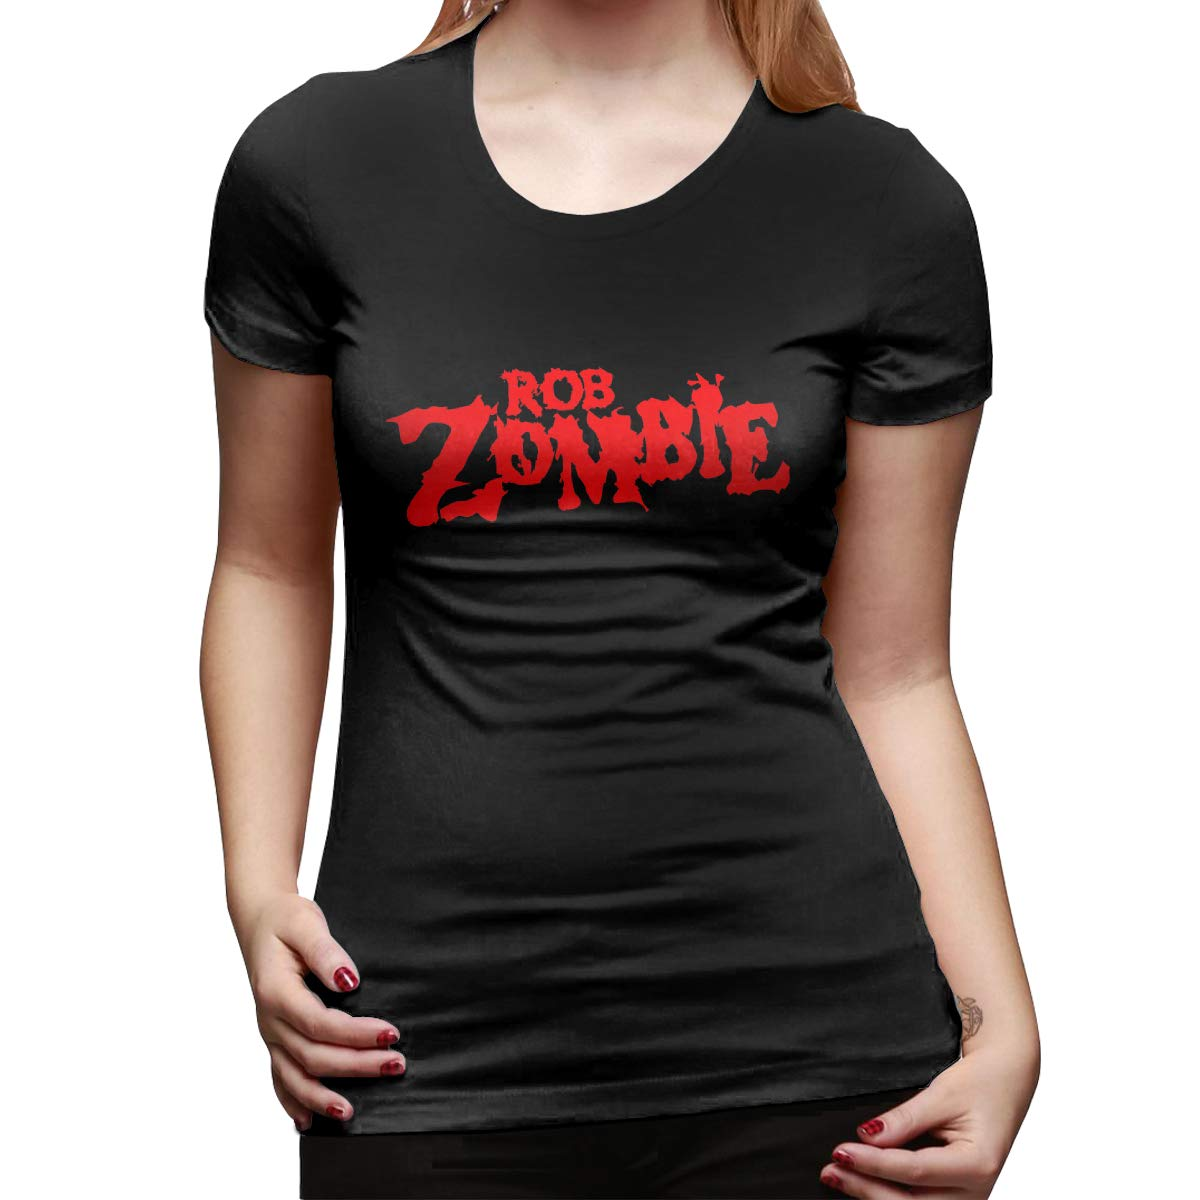 Gaohushilaji Womens T-Shirts Rob Zombie Slim Fit Graphic Tees Tops Blouse Short Sleeve T-Shirt